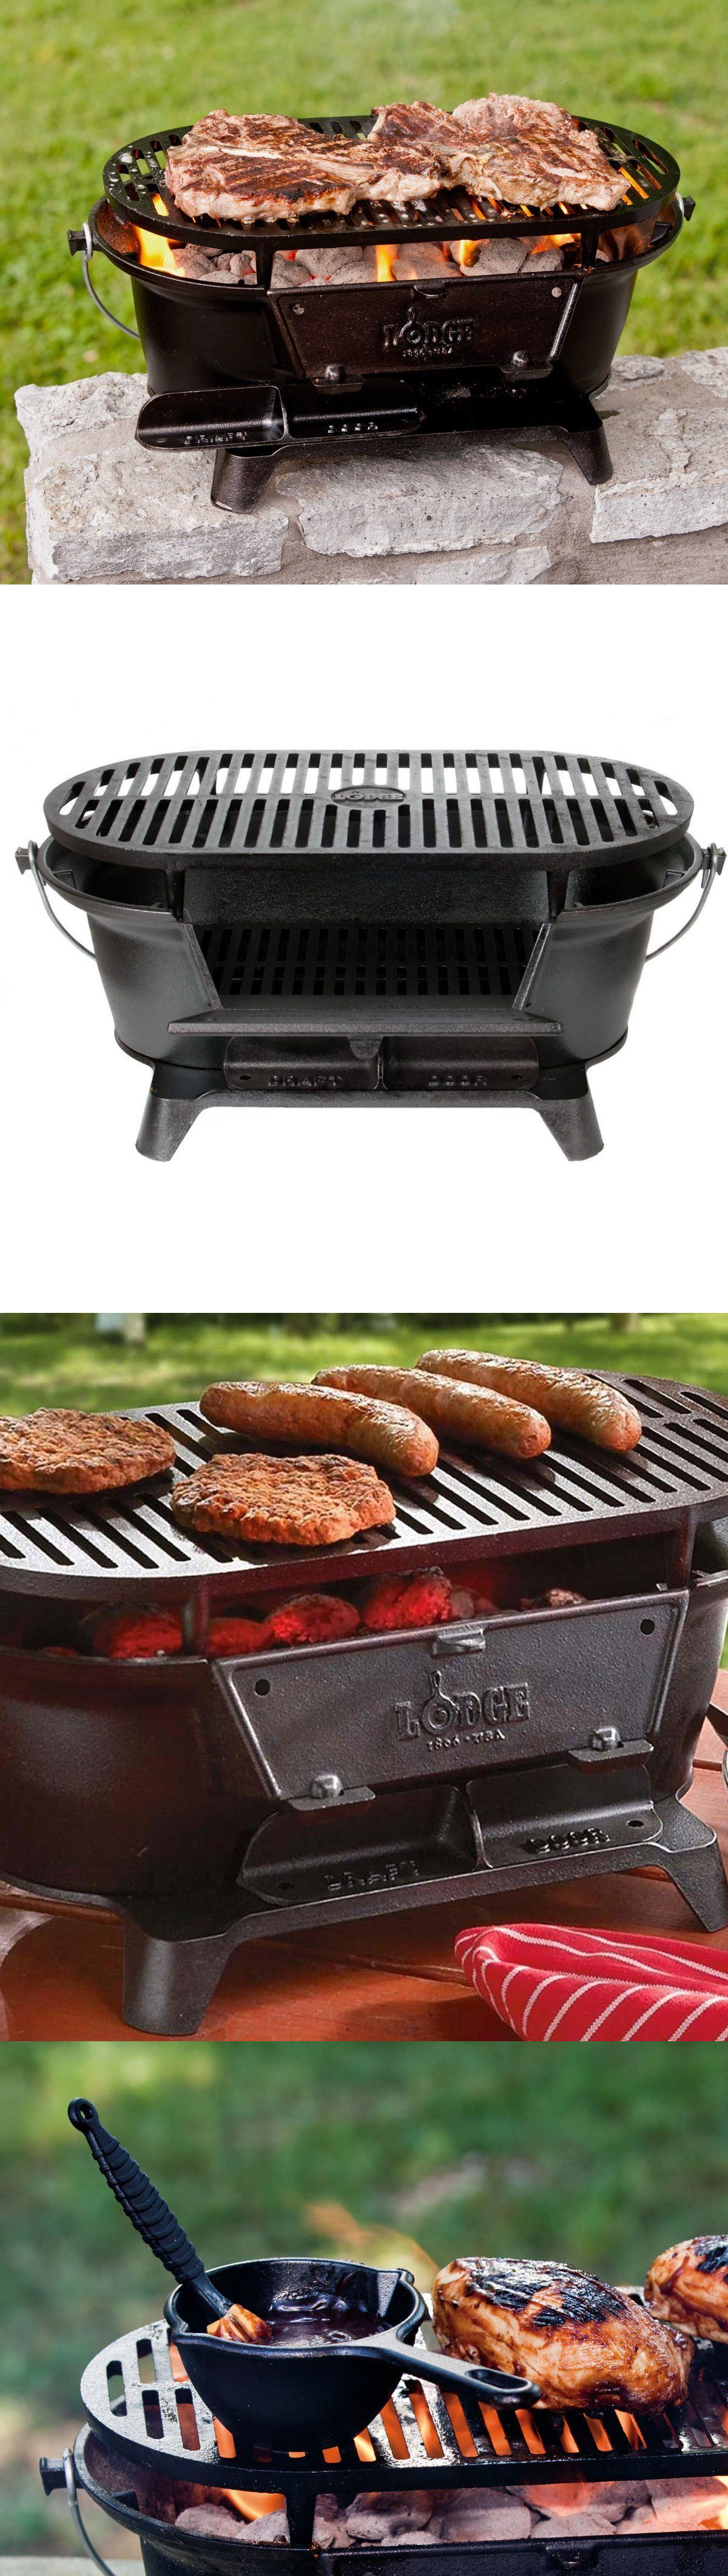 Camping BBQs And Grills 181388: Lodge Charcoal Grill Cast Iron Outdoor  Portable Picnic Camping Bbq